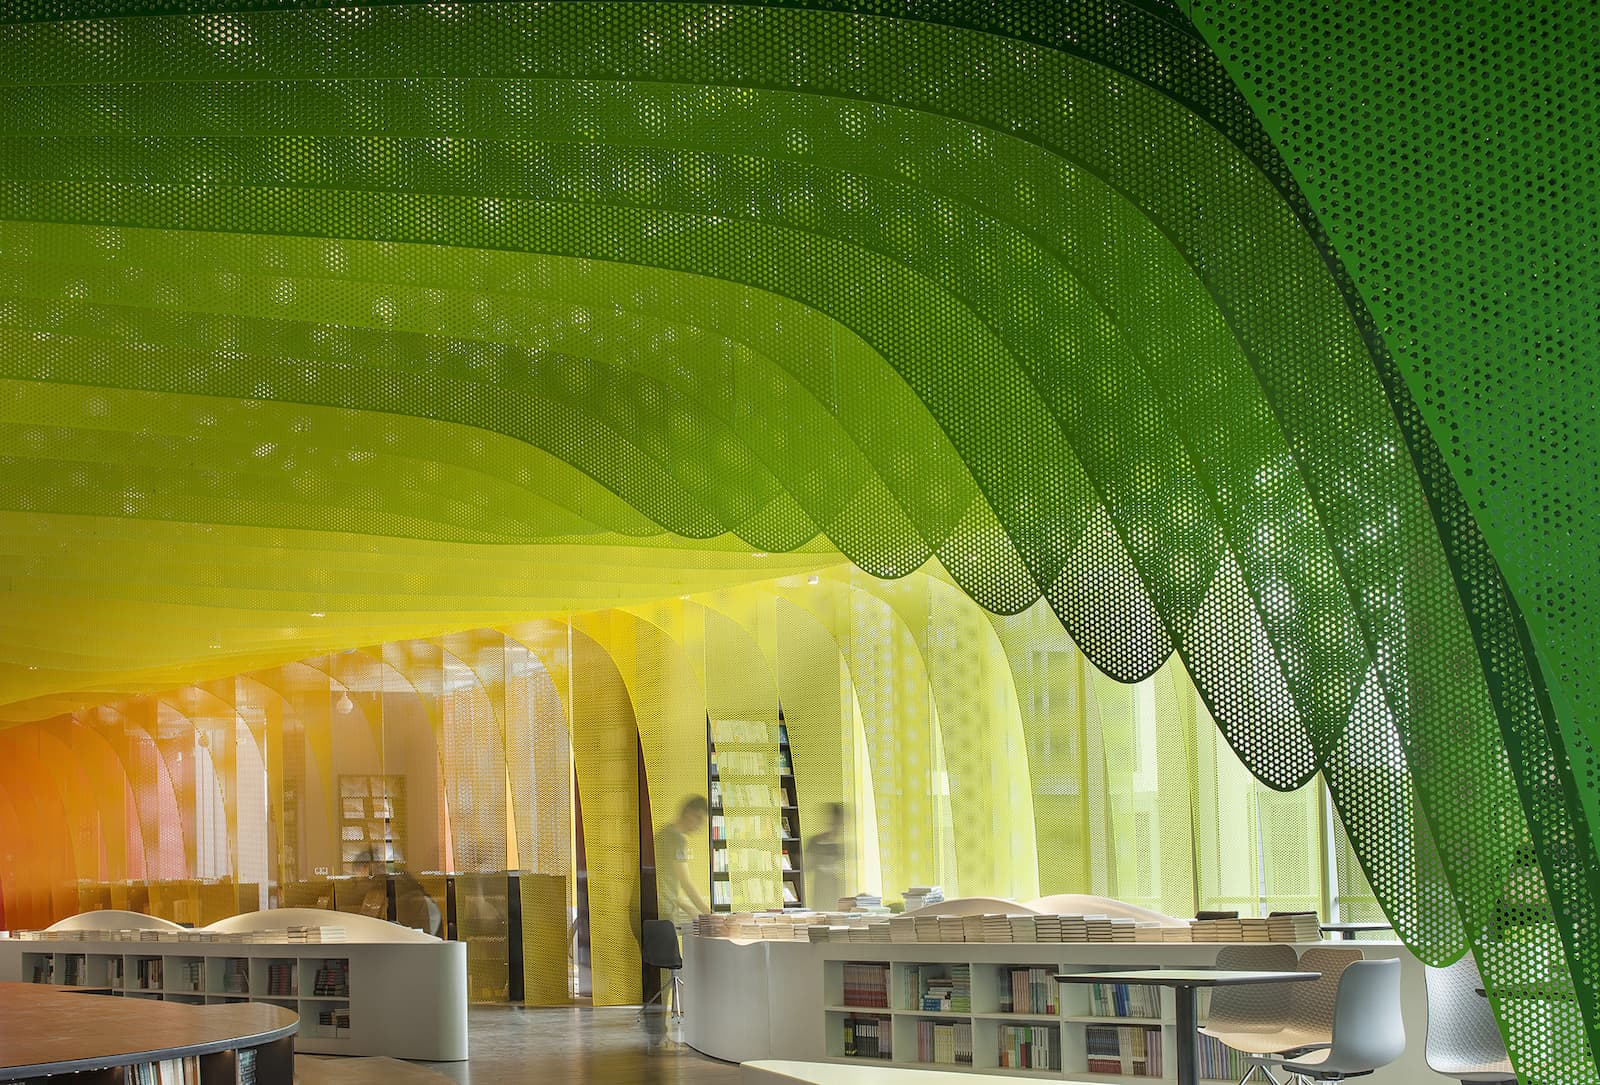 WUtopia Architektur Xanadu of Rainbows Design